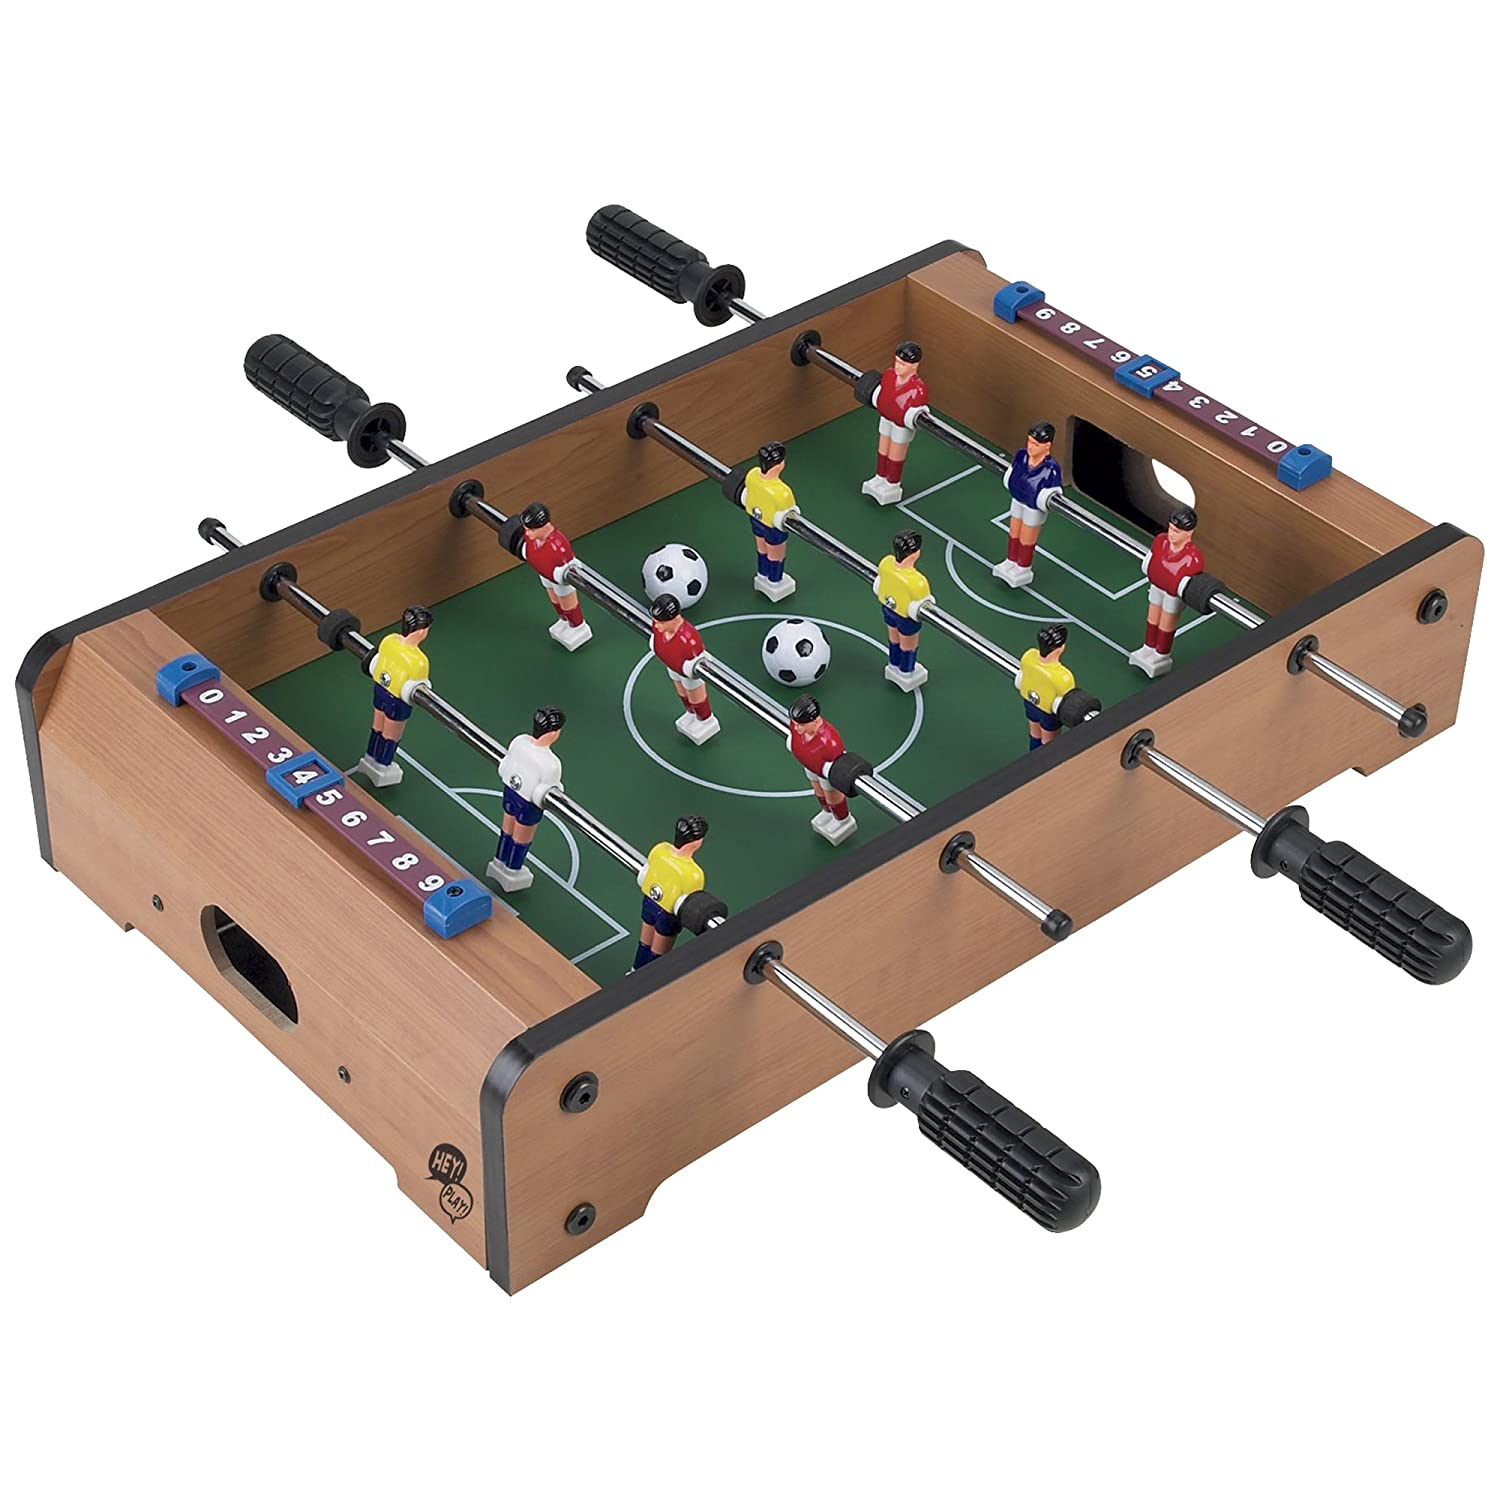 amazoncom foosball table for kids by hey play 20 inches toys u0026 games - Foosball Table For Sale